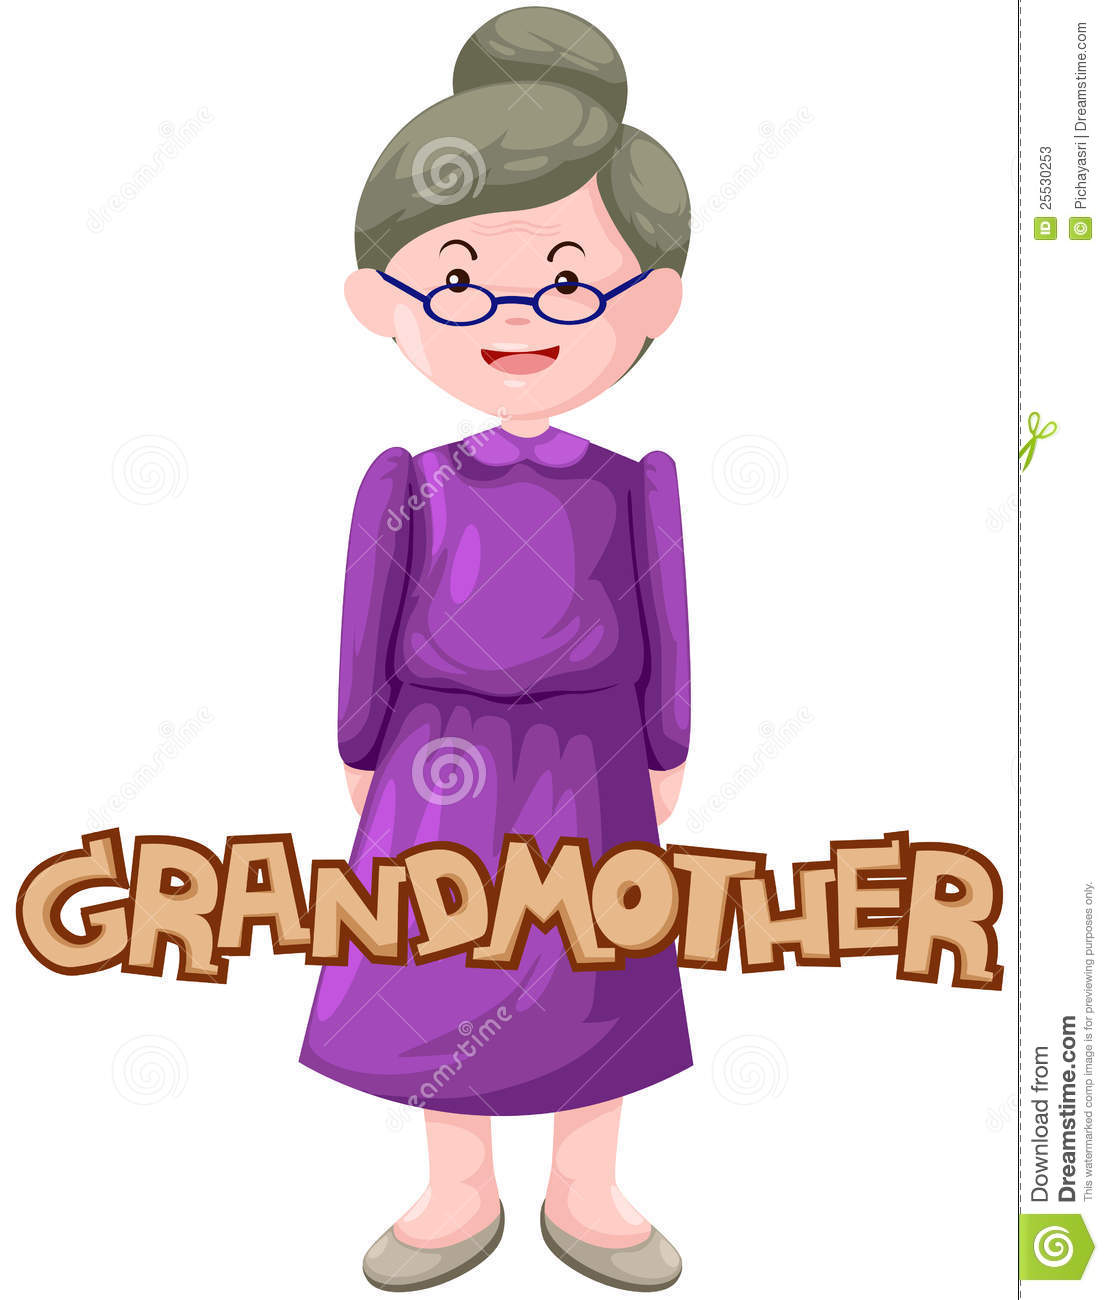 Illustration of isolated letter of grandmother on white.